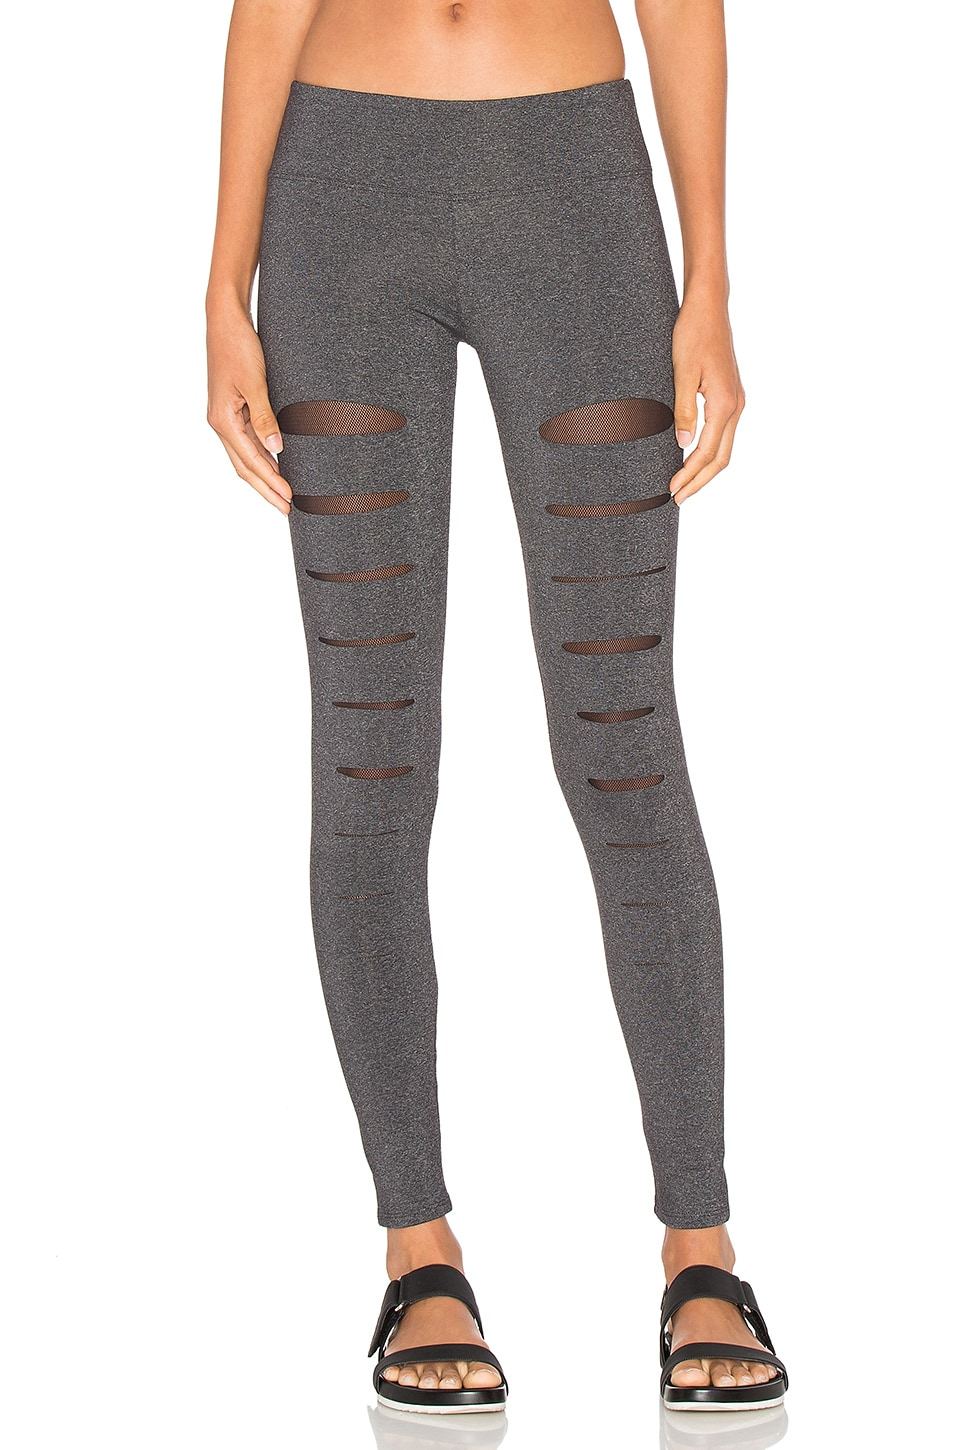 SOLOW Incise Legging in Charcoal